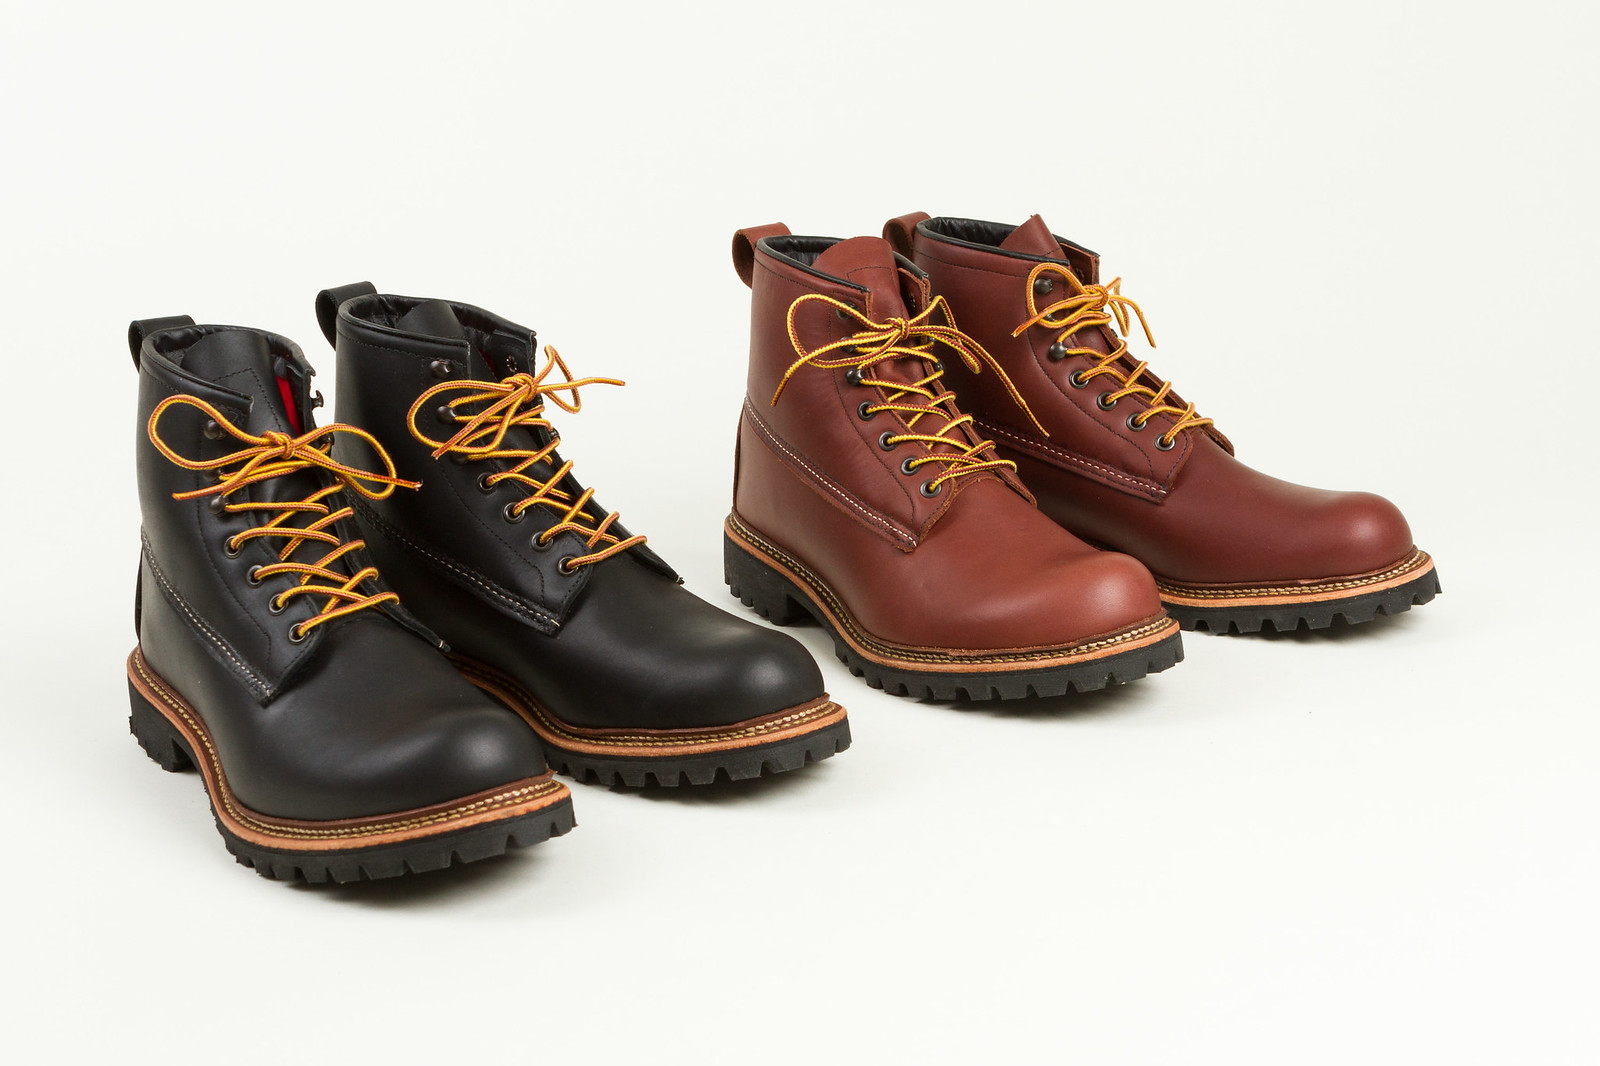 Introducing The Ice Cutter Boot for Cold Winter... | Red Wing Heritage